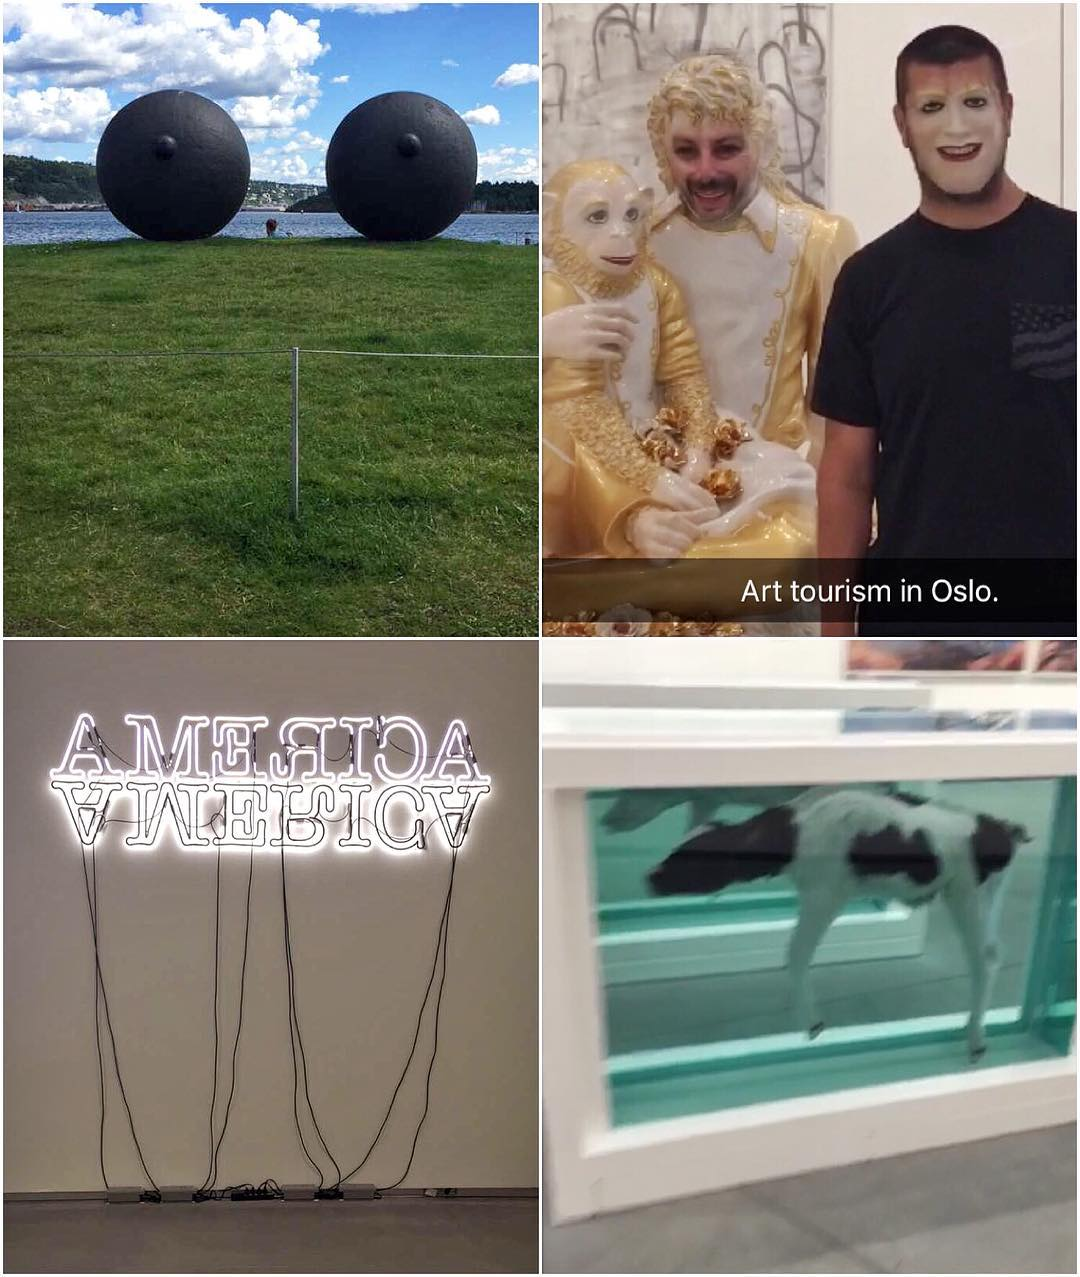 Explored some of the finer parts of Oslo today, including its art. Very interesting art. Guess which one's my favorite? #artboobs #arttourism #faceswapwithMJ #Snaps #JeffKoons #DamienHirst #Oslo